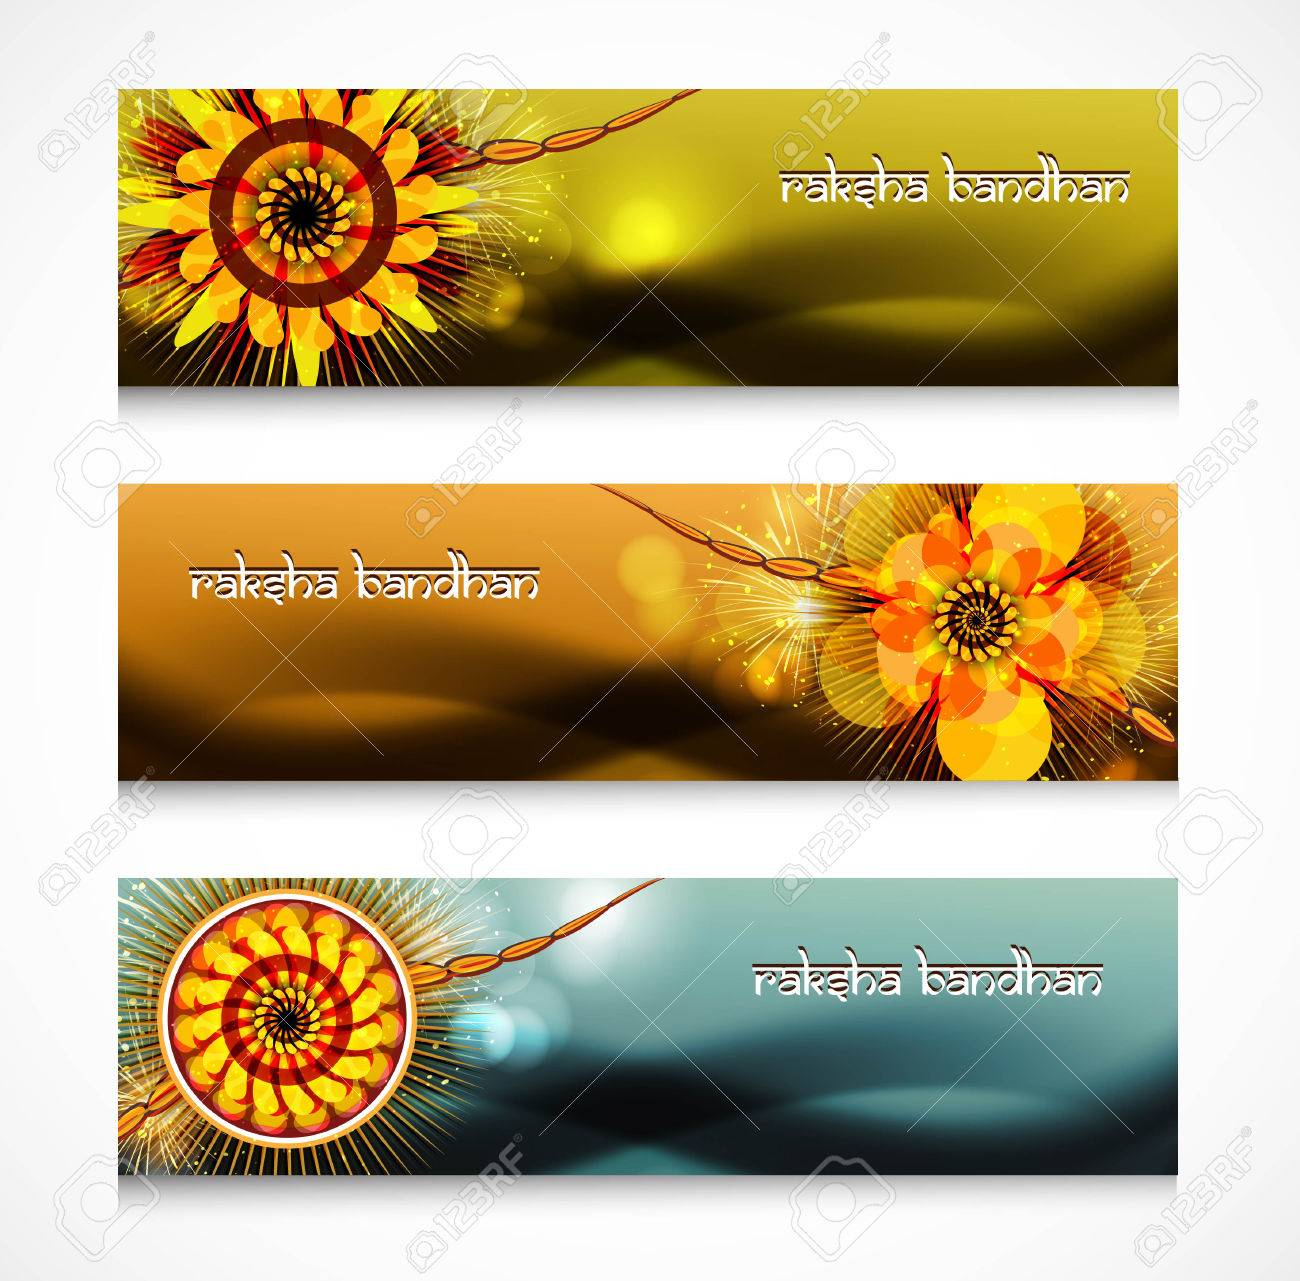 Shiny headers or banners Raksha Bandhan celebration colorful design Stock Vector - 23519819